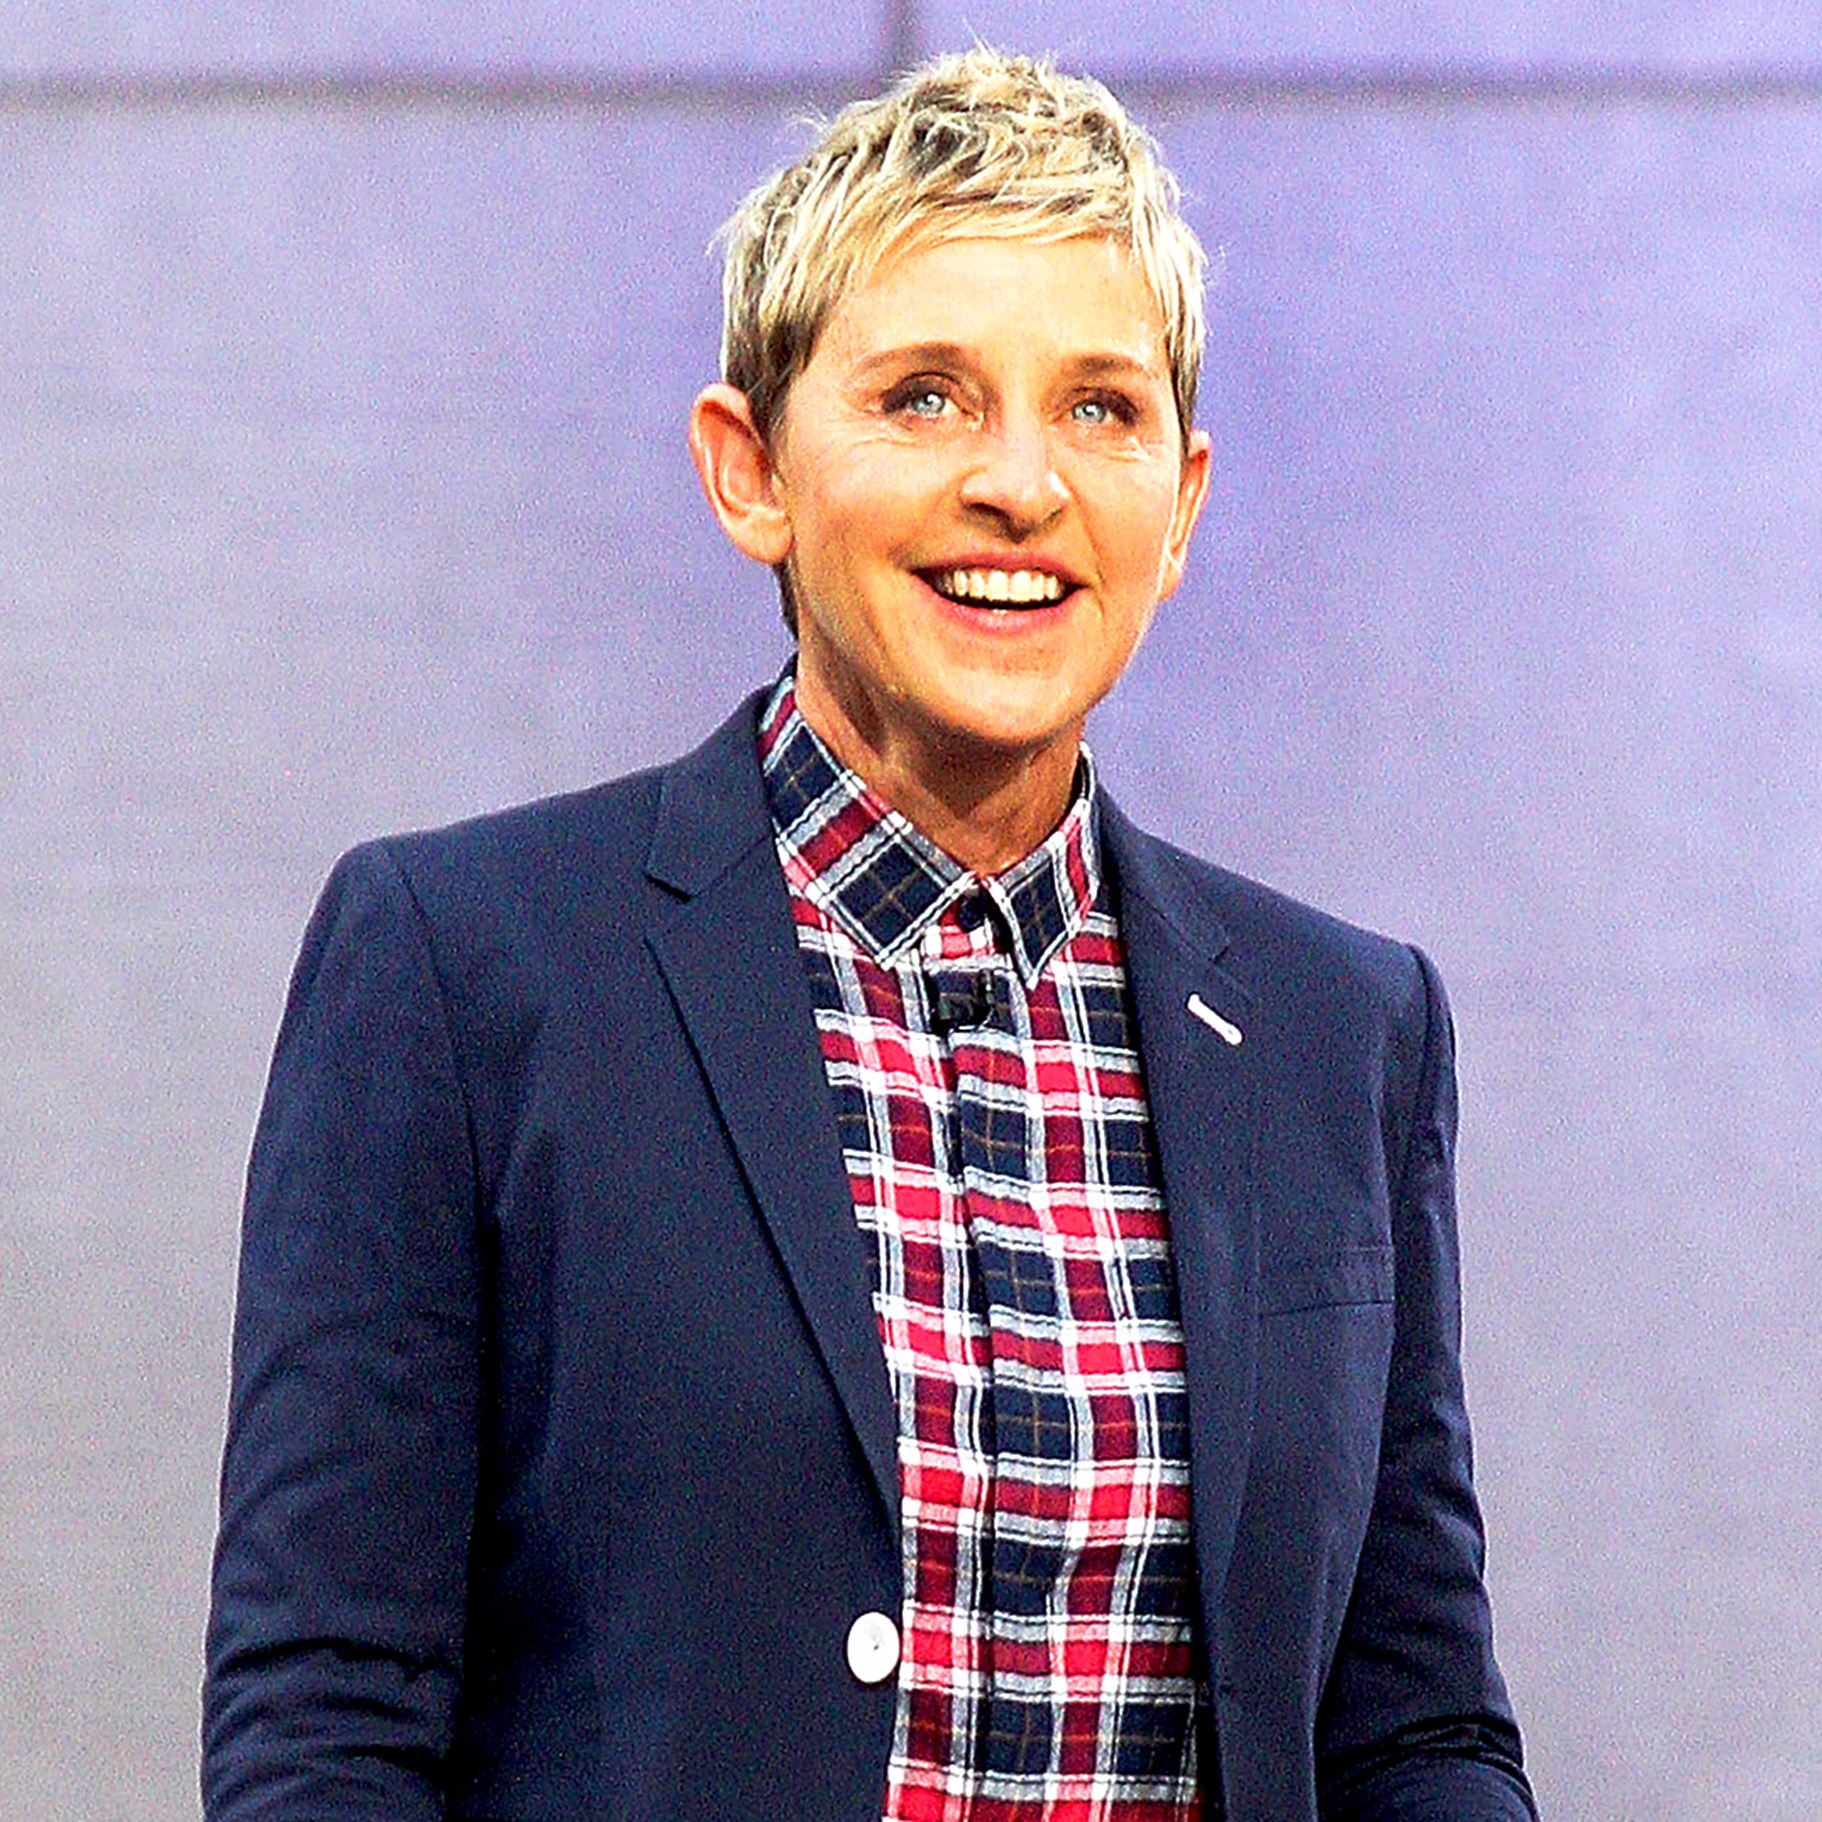 Ellen DeGeneres attends 'The Ellen DeGeneres Show' Bi-Coastal Premiere at Rockefeller Center in New York City.